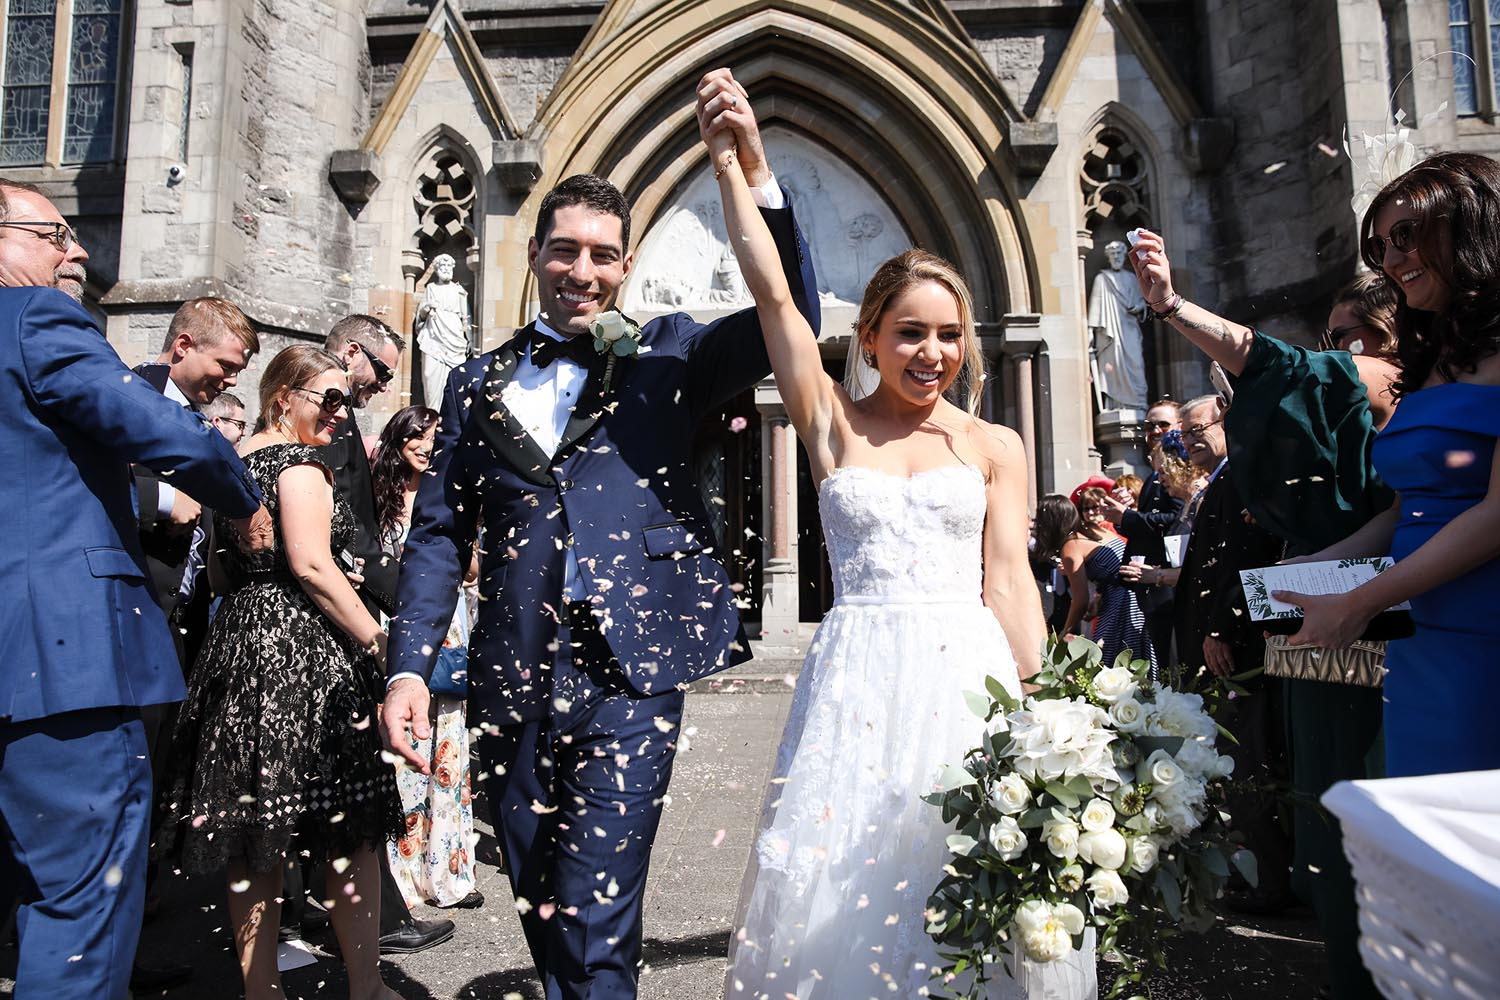 Throwing confetti on the newly married couple outside St Macartan's Cathedral